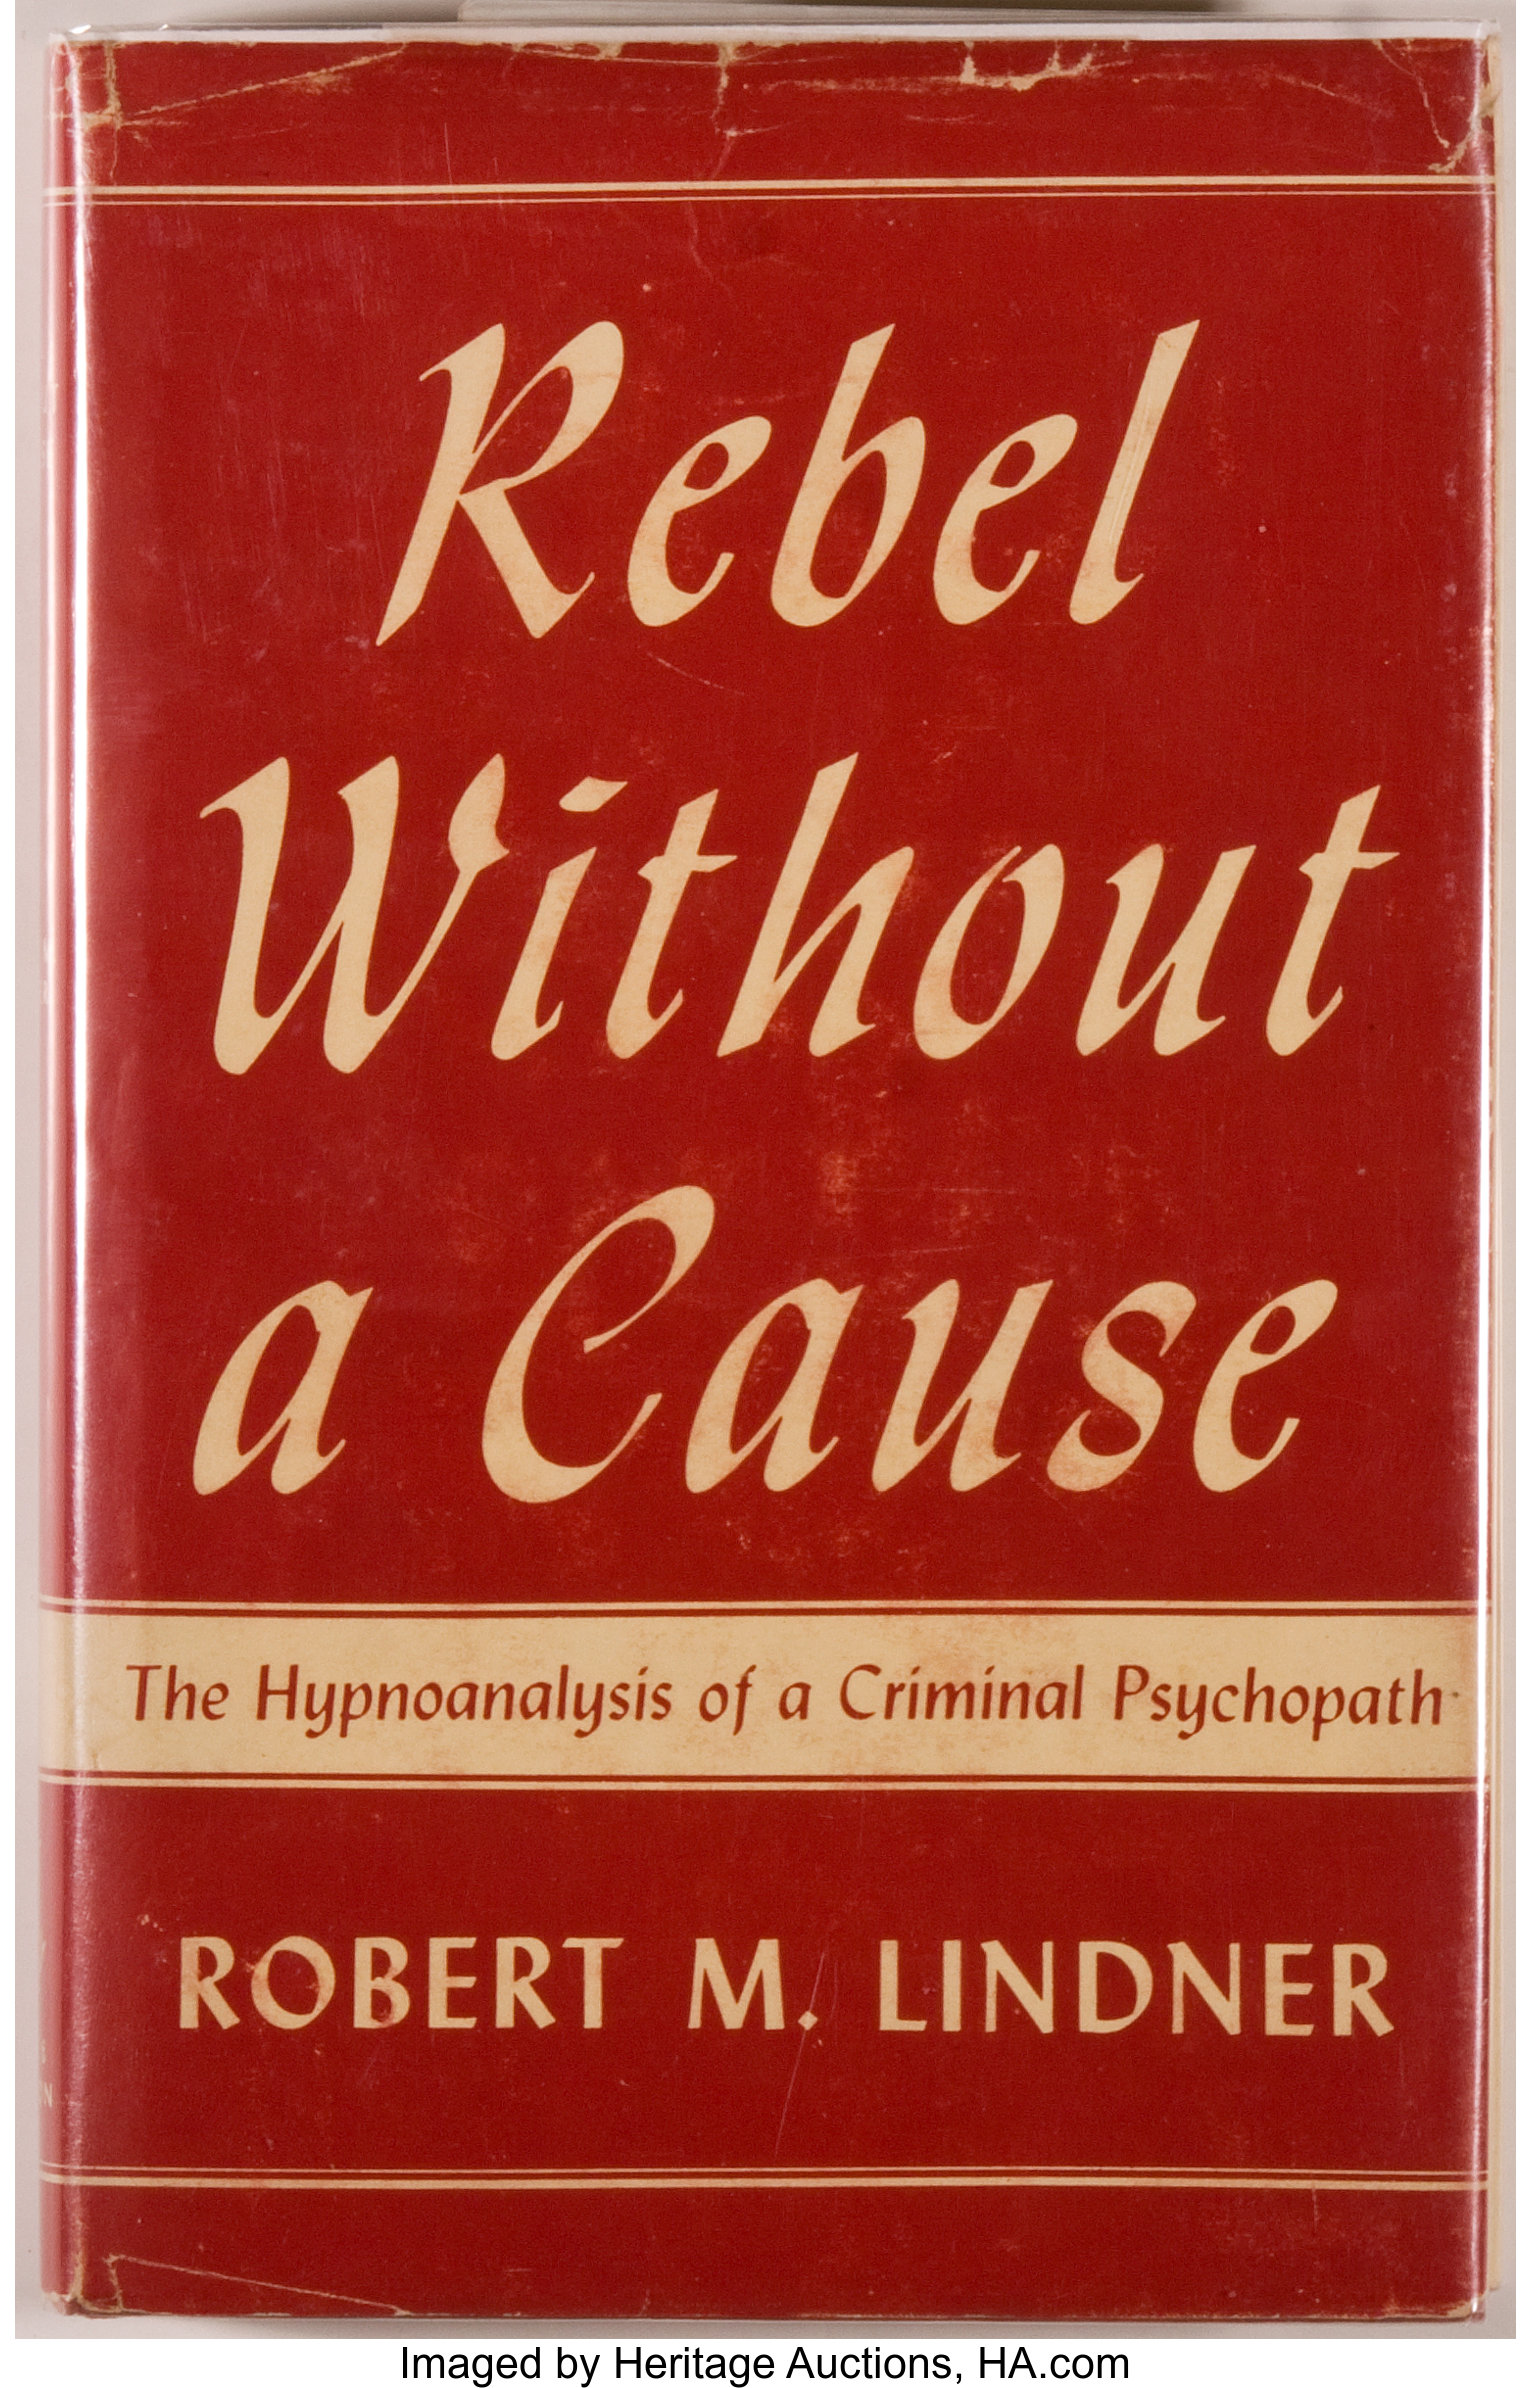 Robert M. Lindner. Rebel Without a Cause... The Hypnoanalysis of a | Lot #92353 | Heritage Auctions